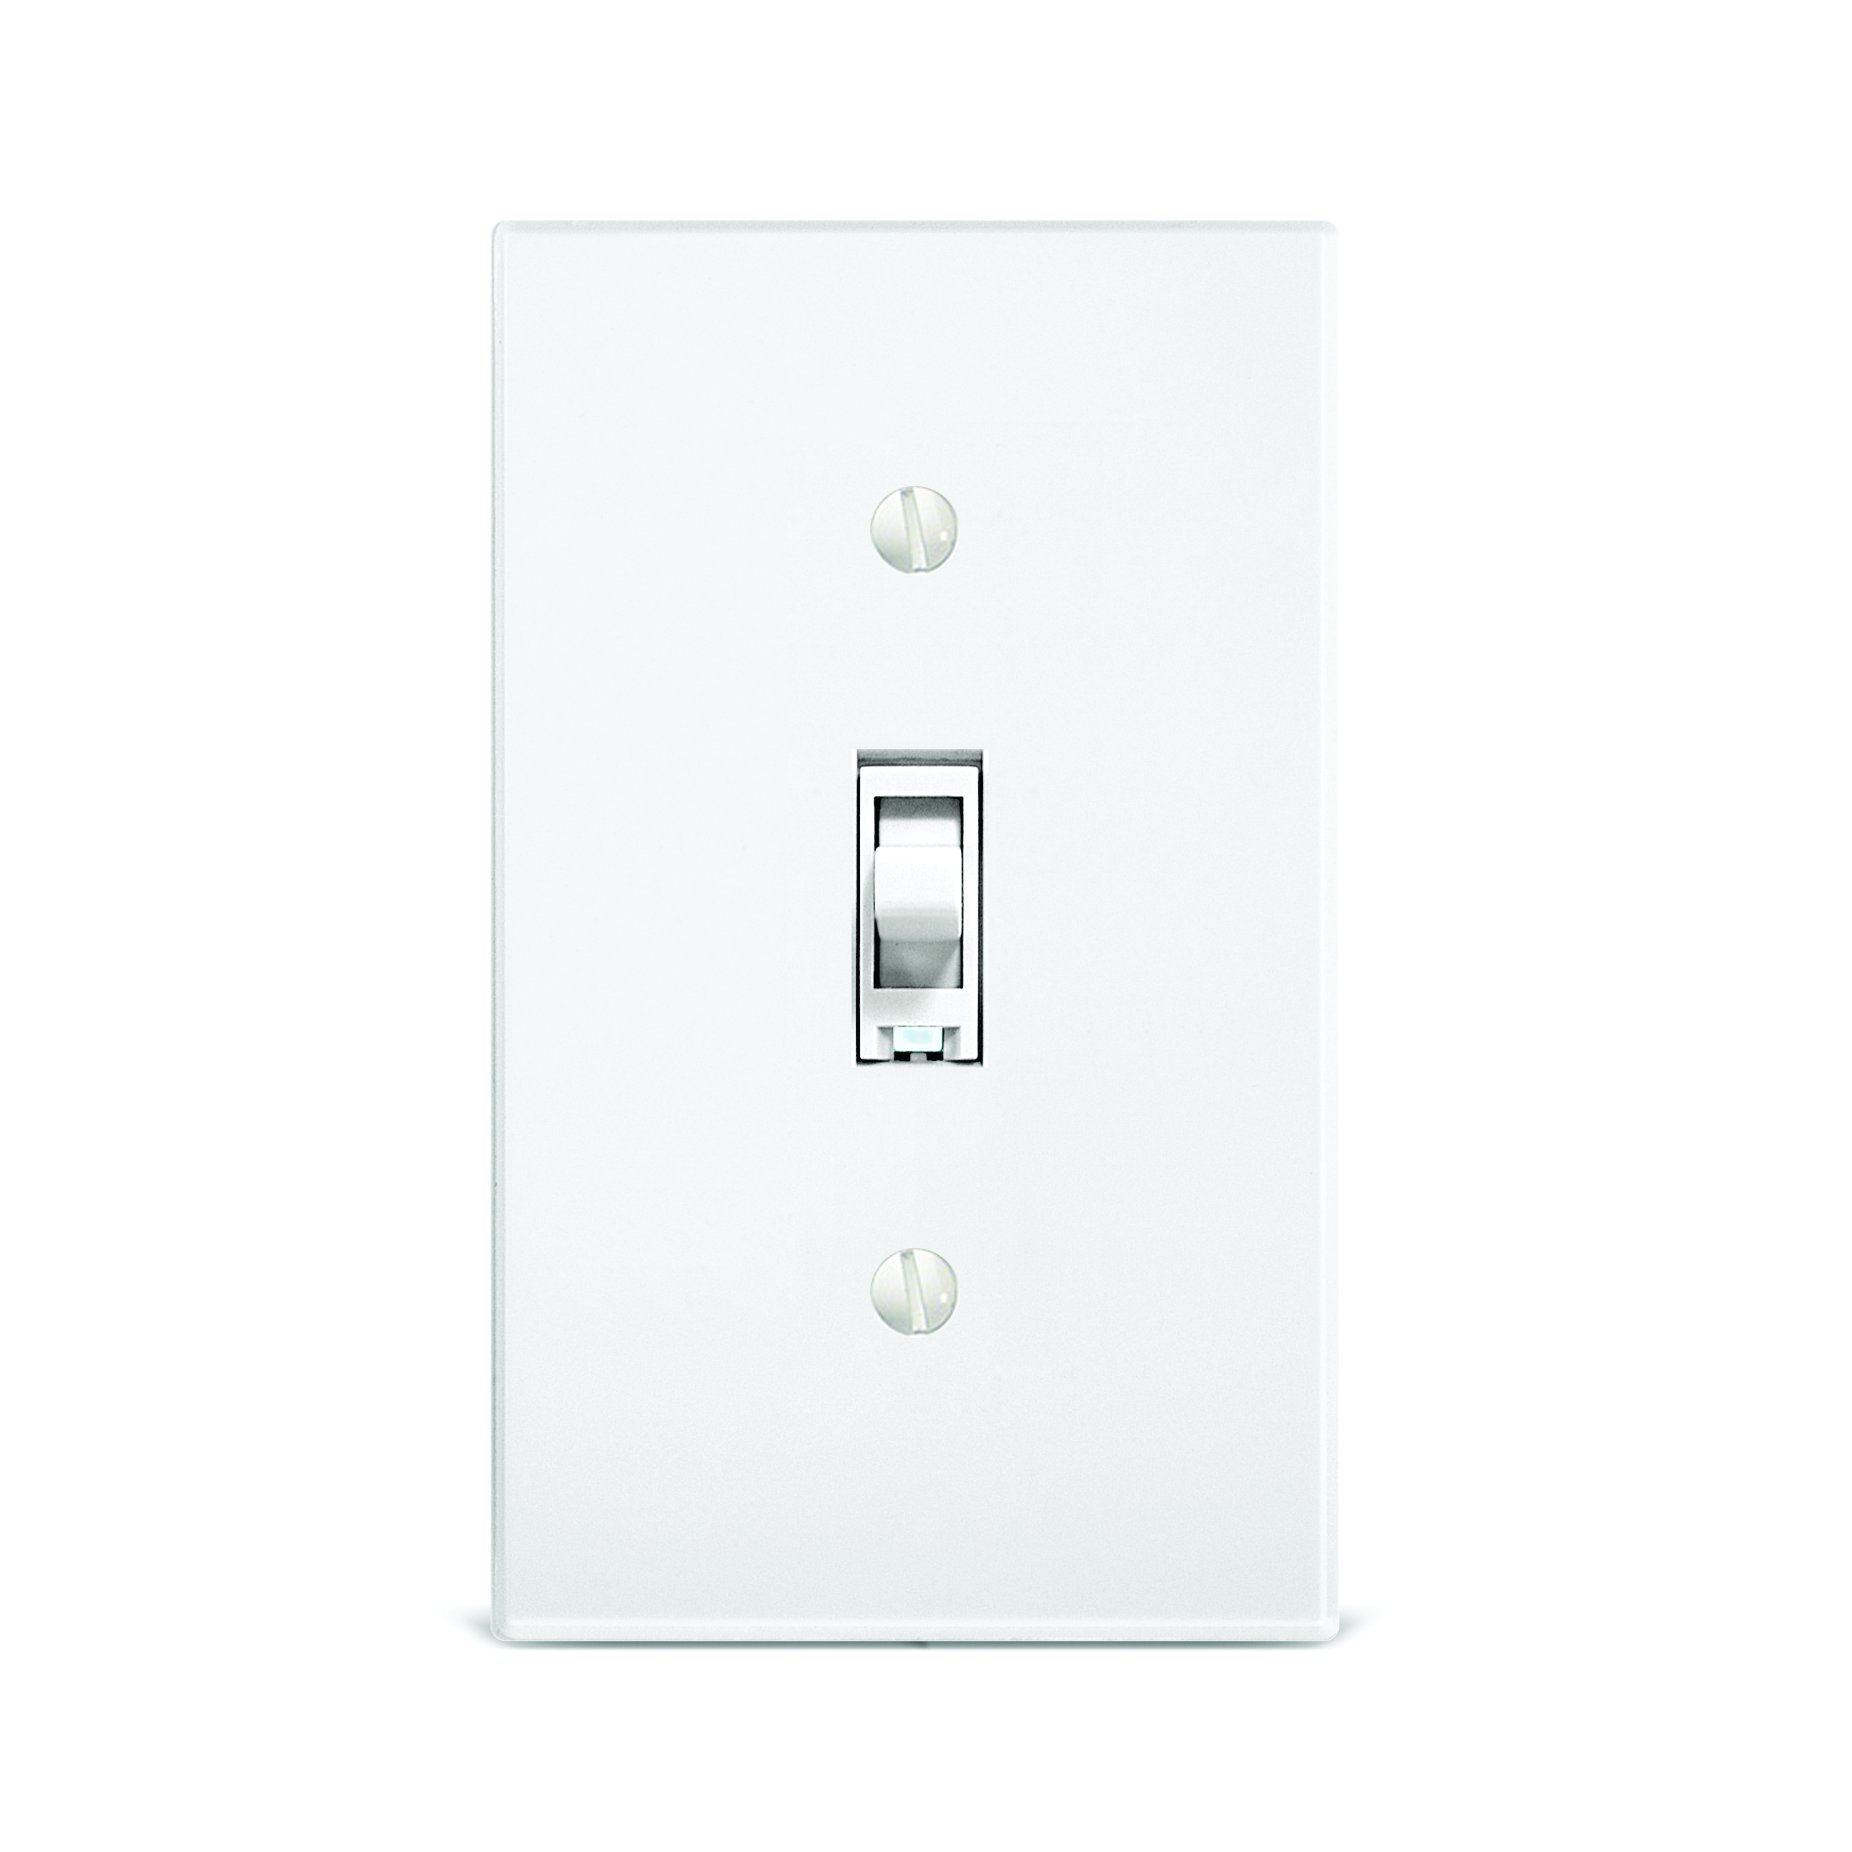 insteon 2466sw togglelinc relay insteon remote control on  off switch non